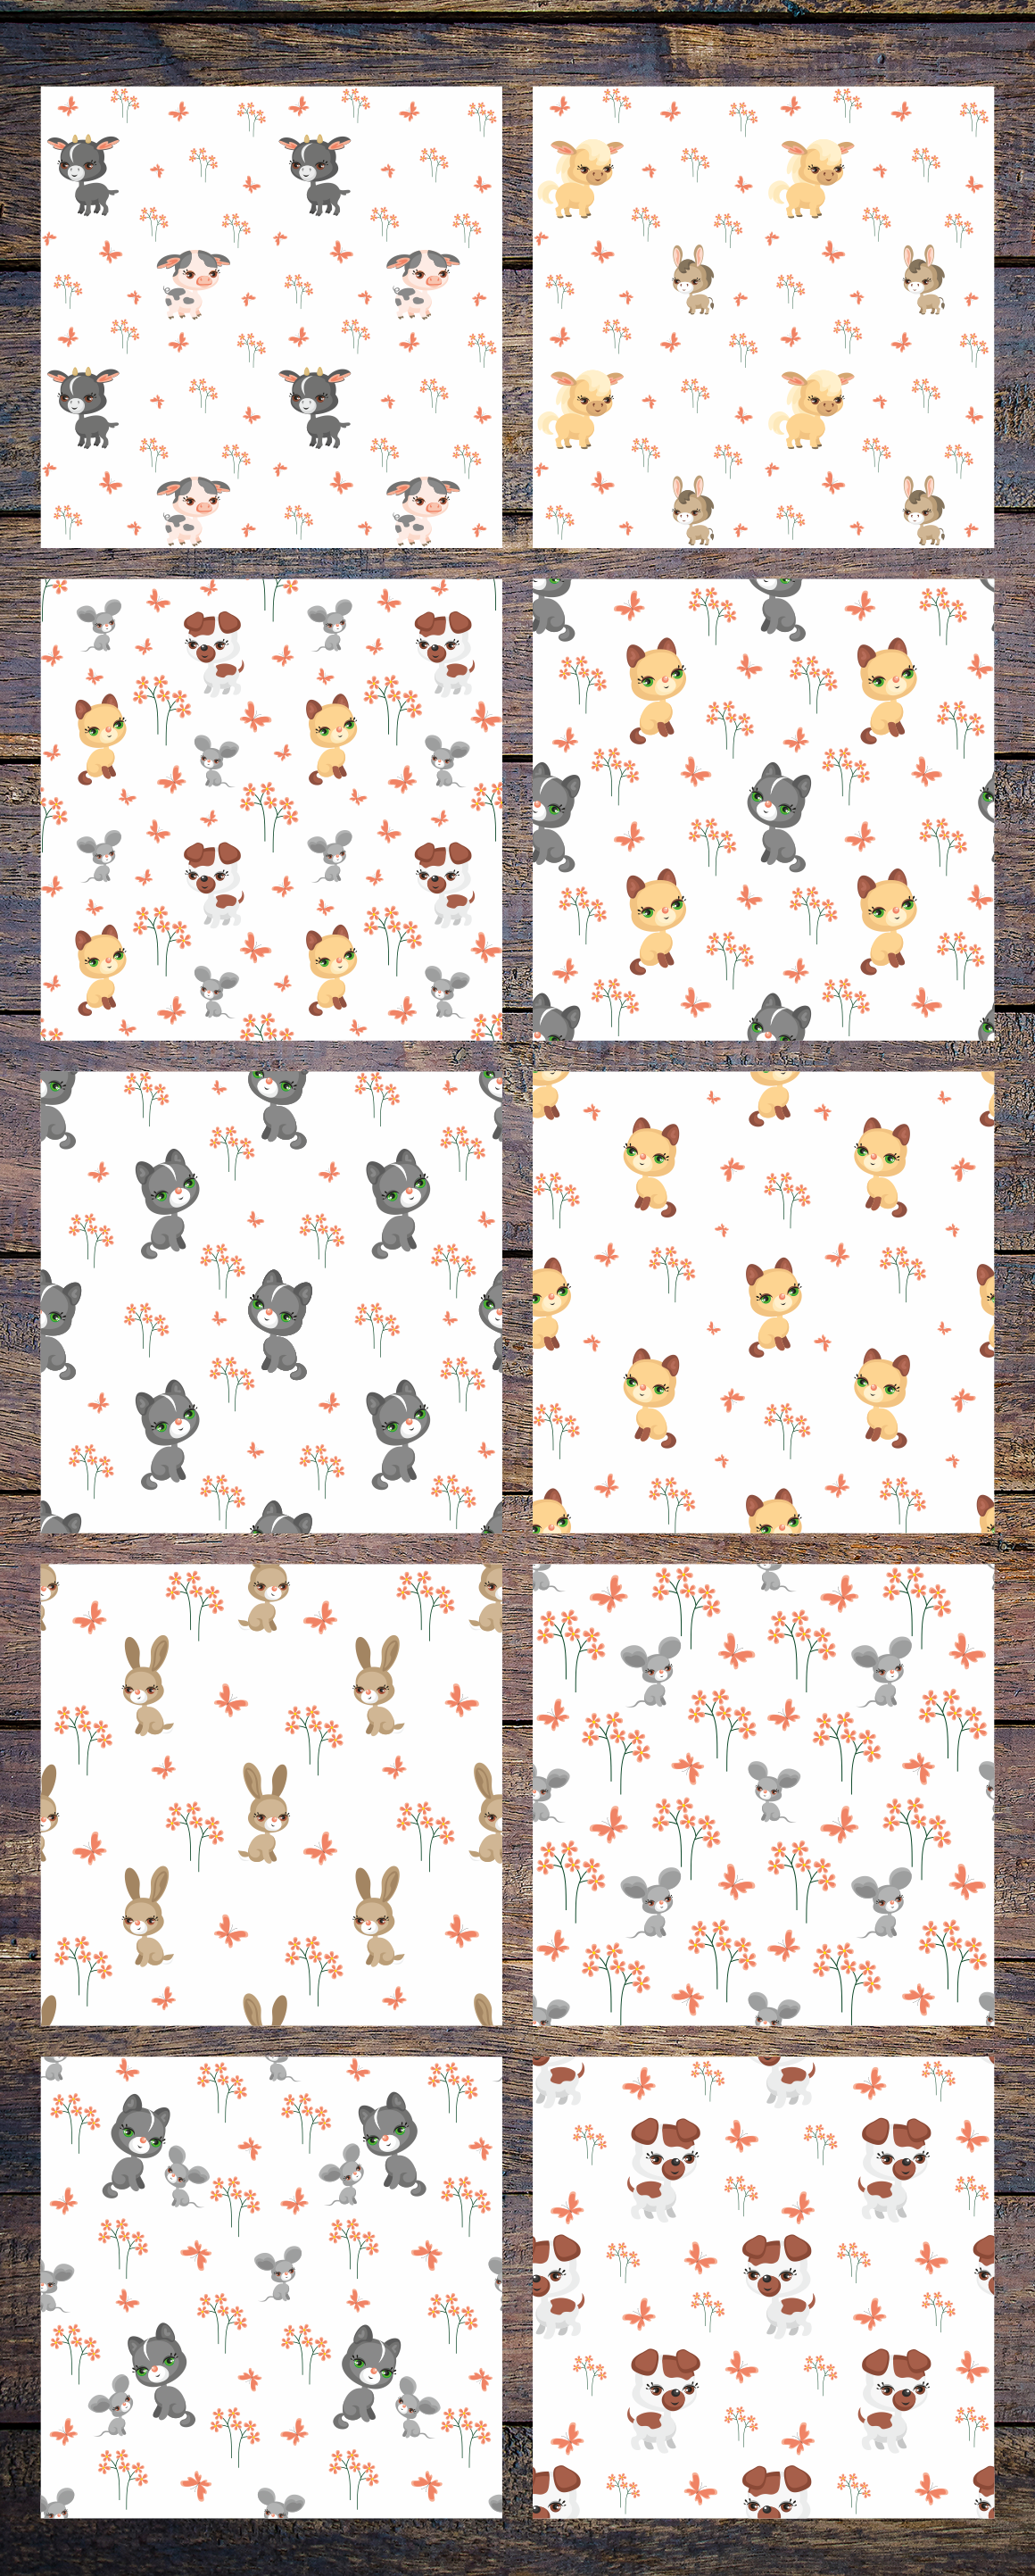 Print on Demand: Farm Animals Seamless Patterns Graphic Patterns By Olga Belova - Image 3